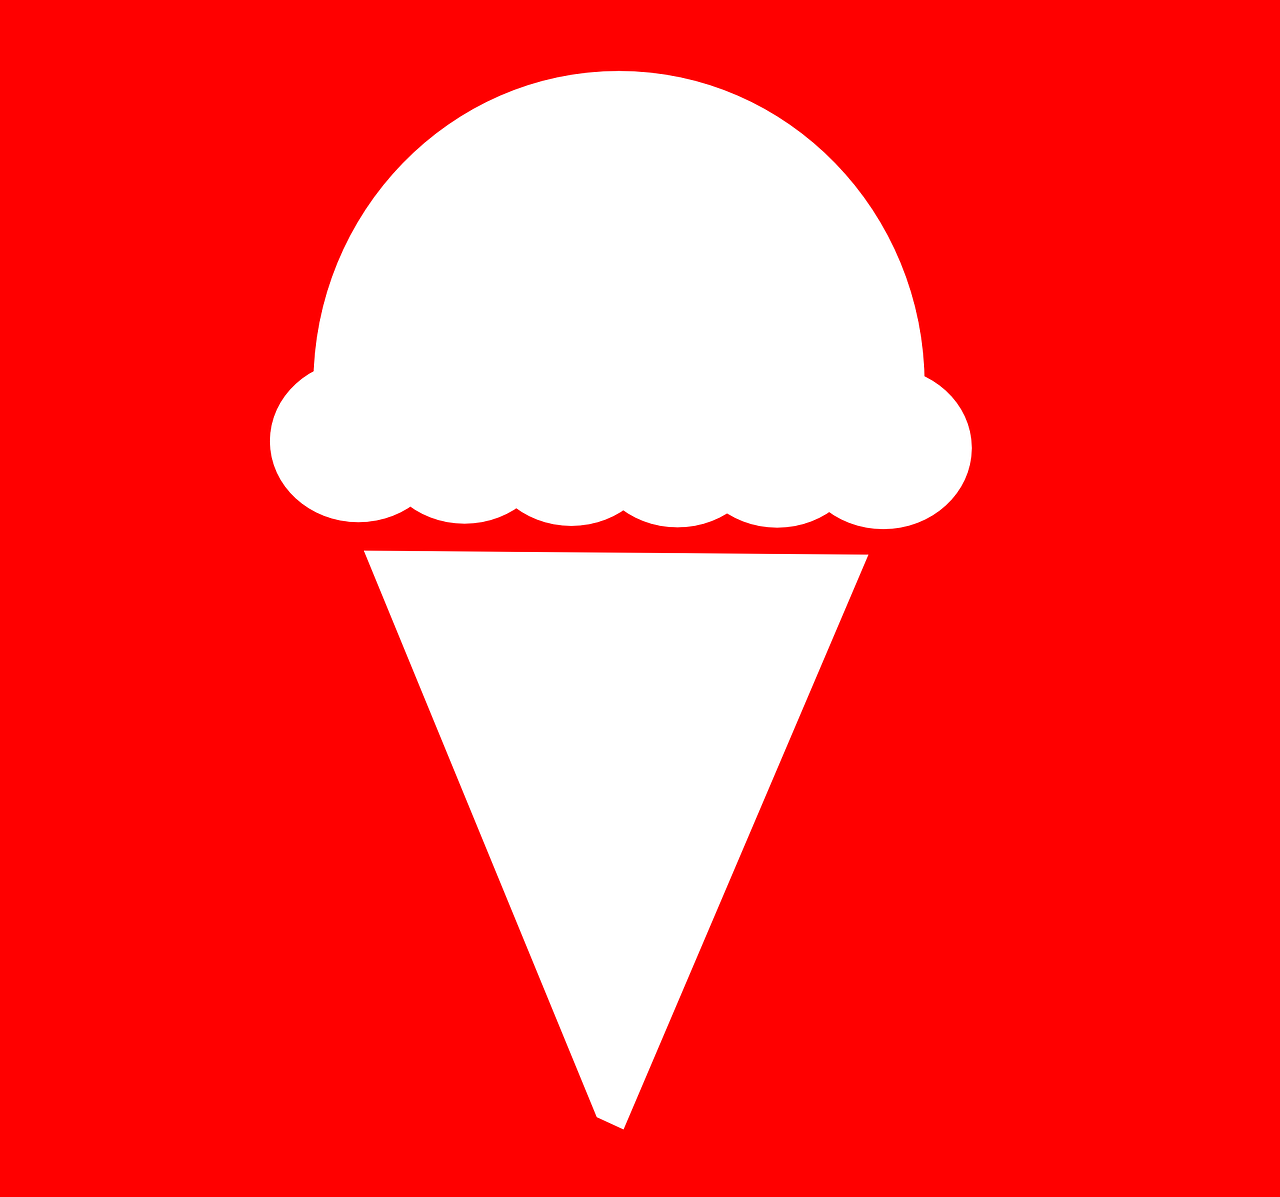 ice cream cone free photo